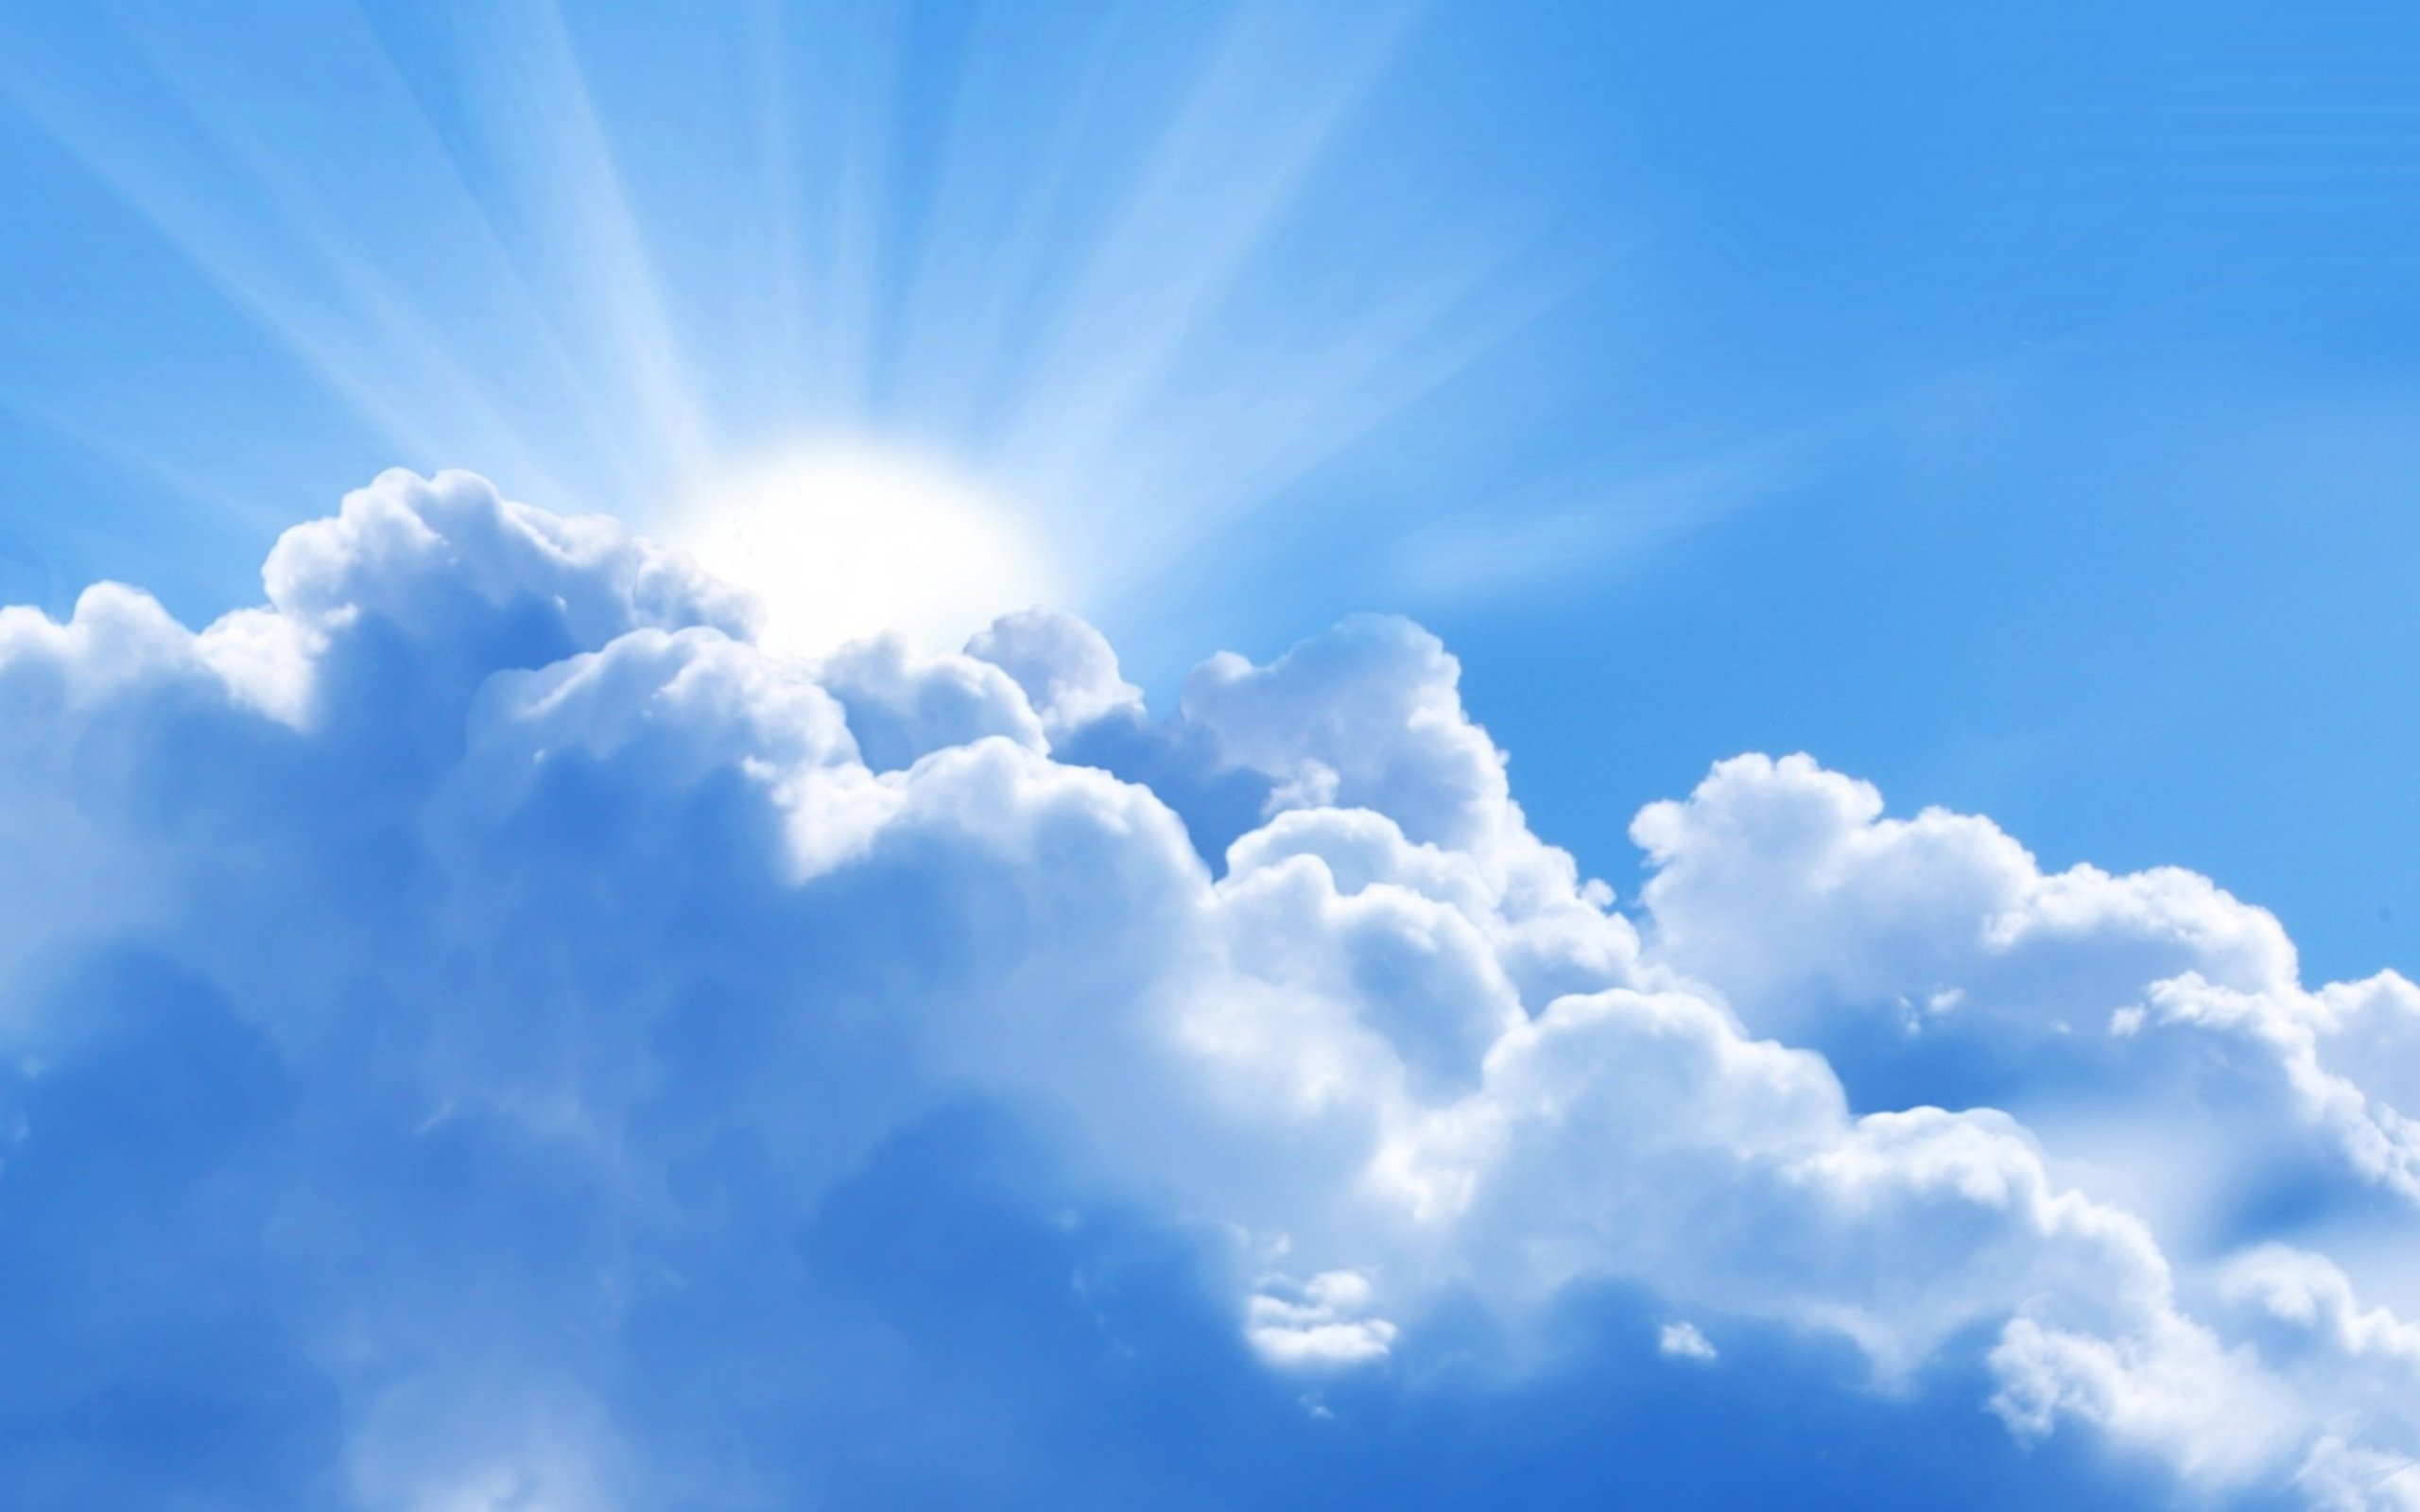 Sky With Clouds Background Blue cloud on the sky 2560x1600